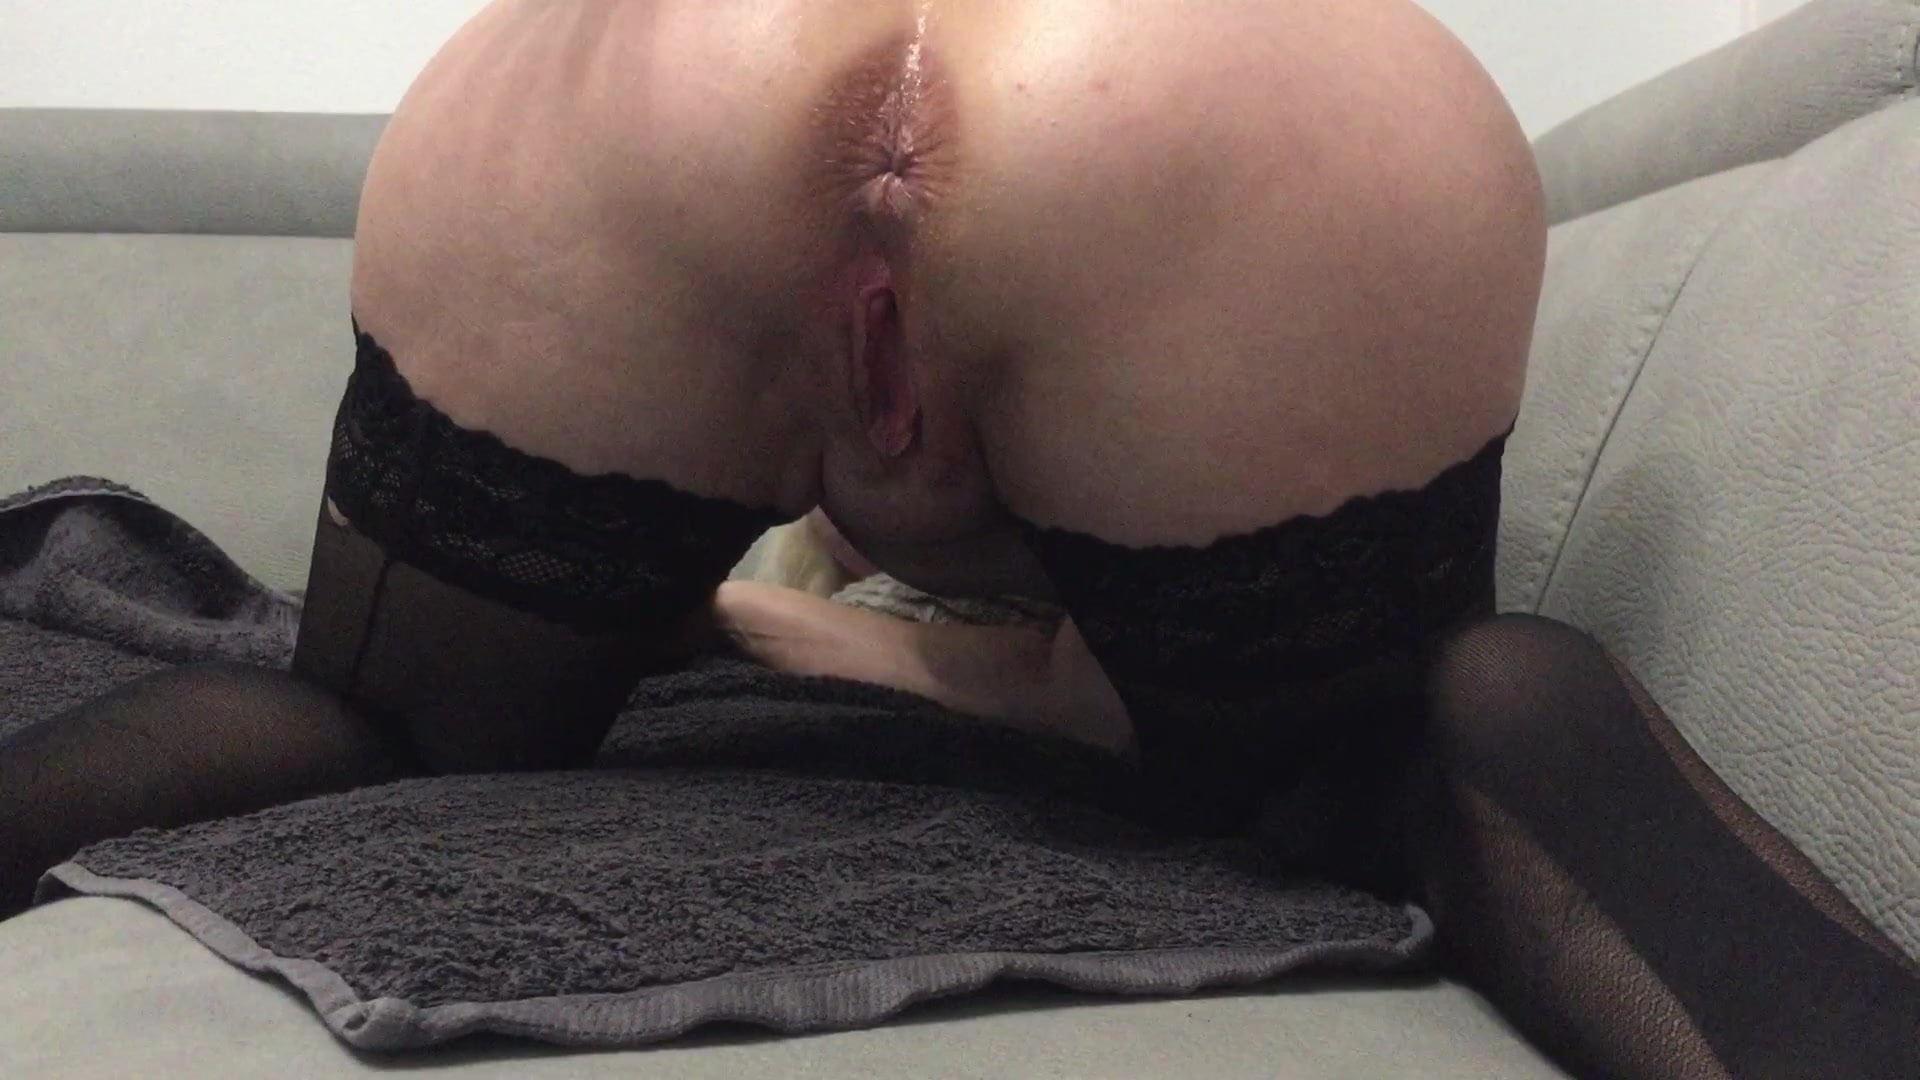 Pussy stretching and anal in louboutin